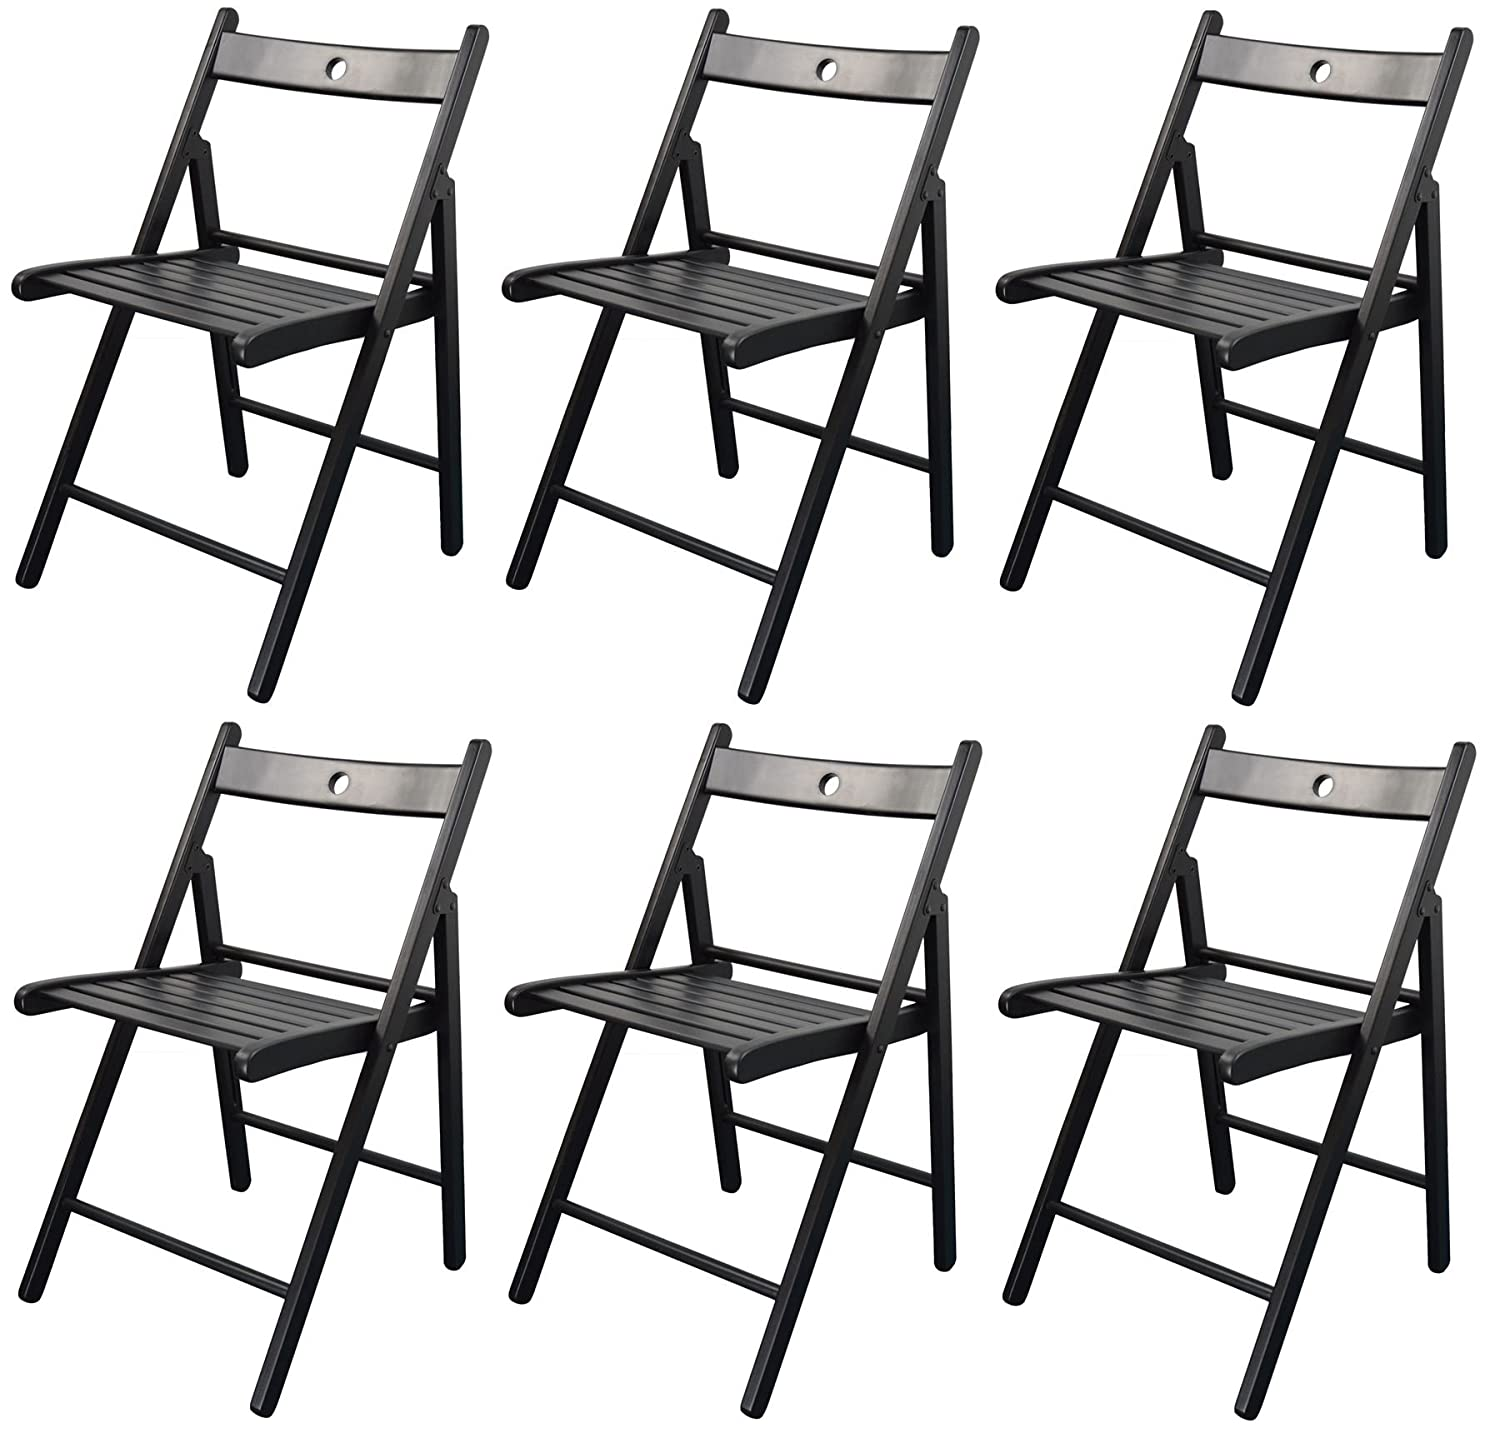 Harbour Housewares Wooden Folding Chairs - Black Wood Colour - Pack of 6…